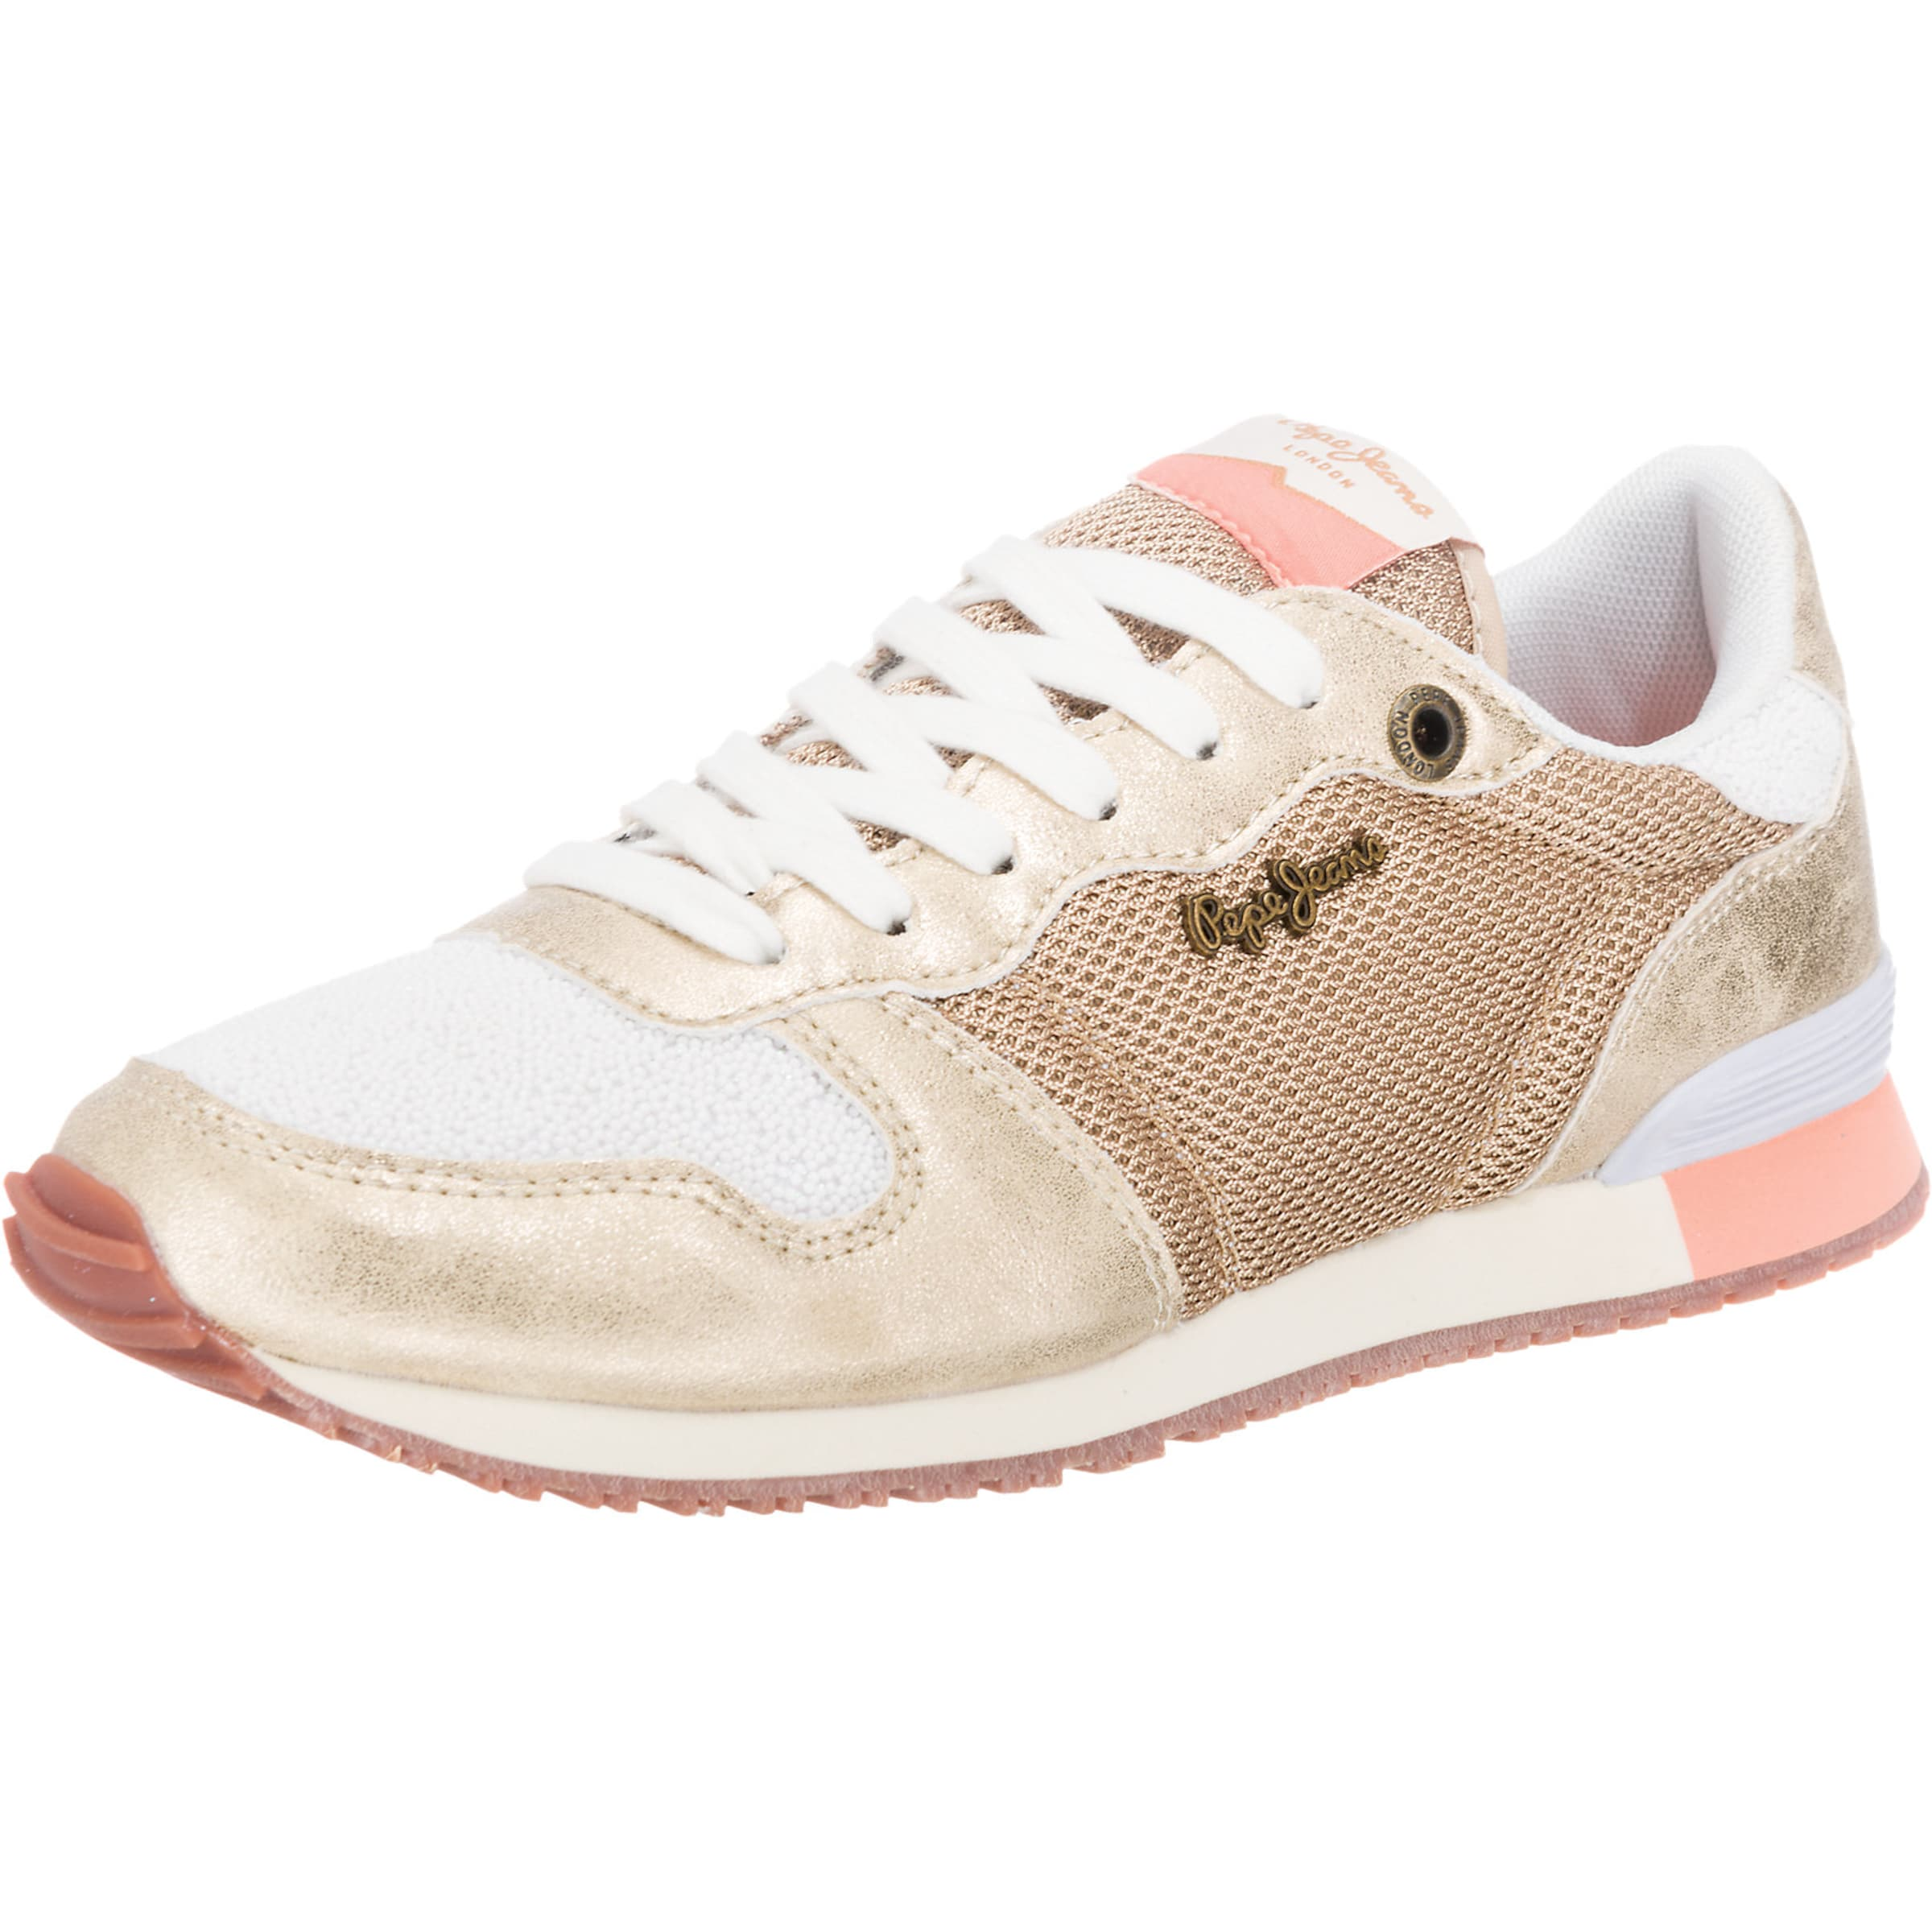 Pepe Jeans Sneaker Low  Gable